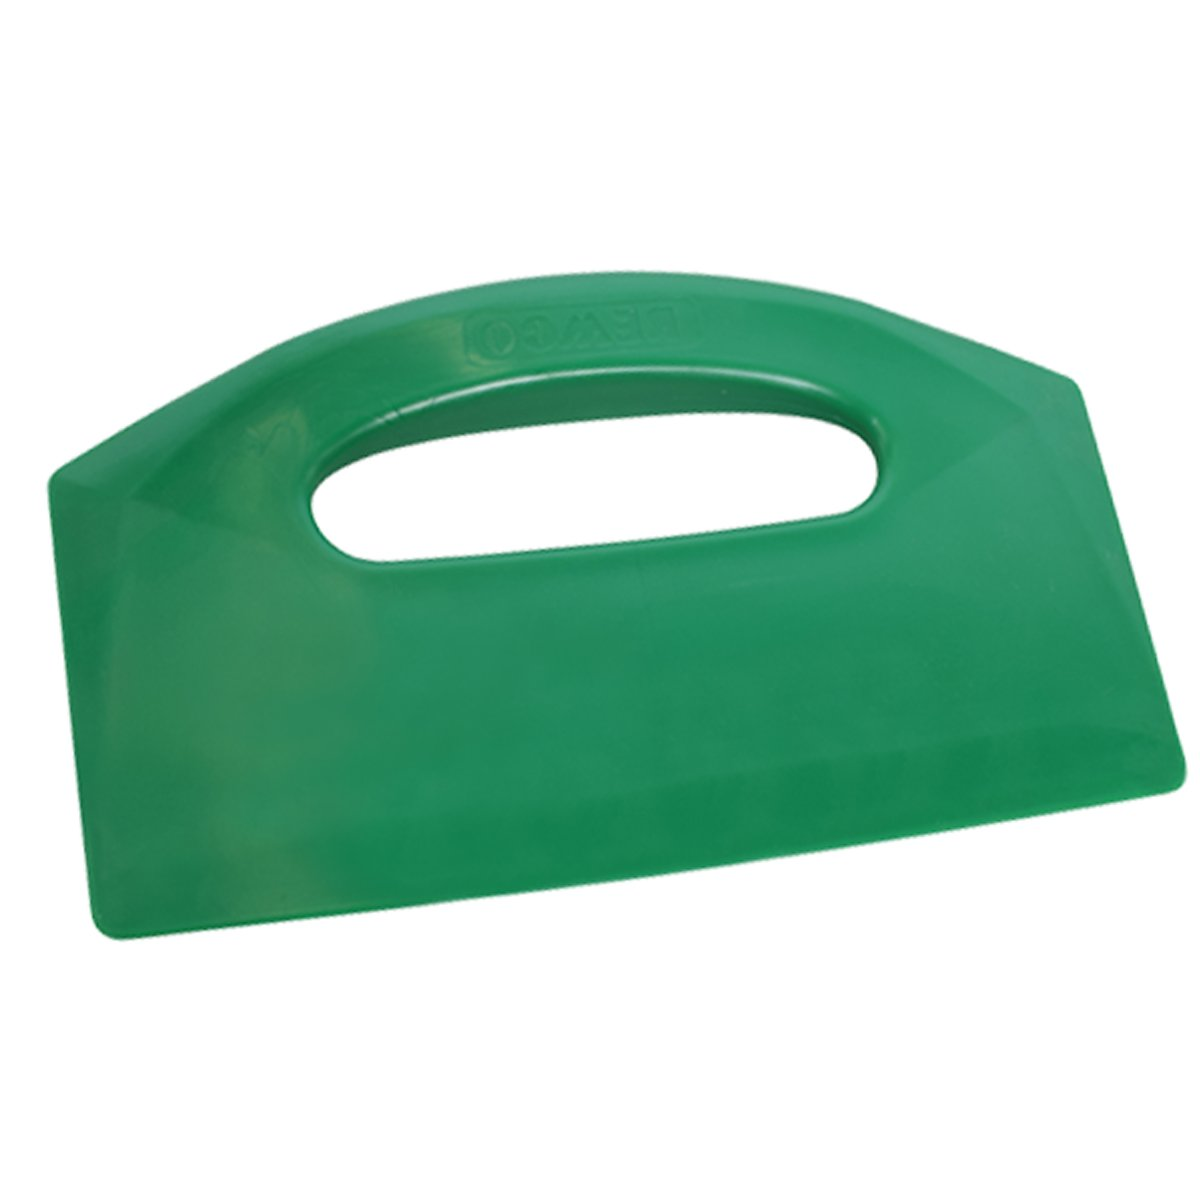 UltraSource Bowl/Bench Scraper, Green, 8.5'' x 5.5''